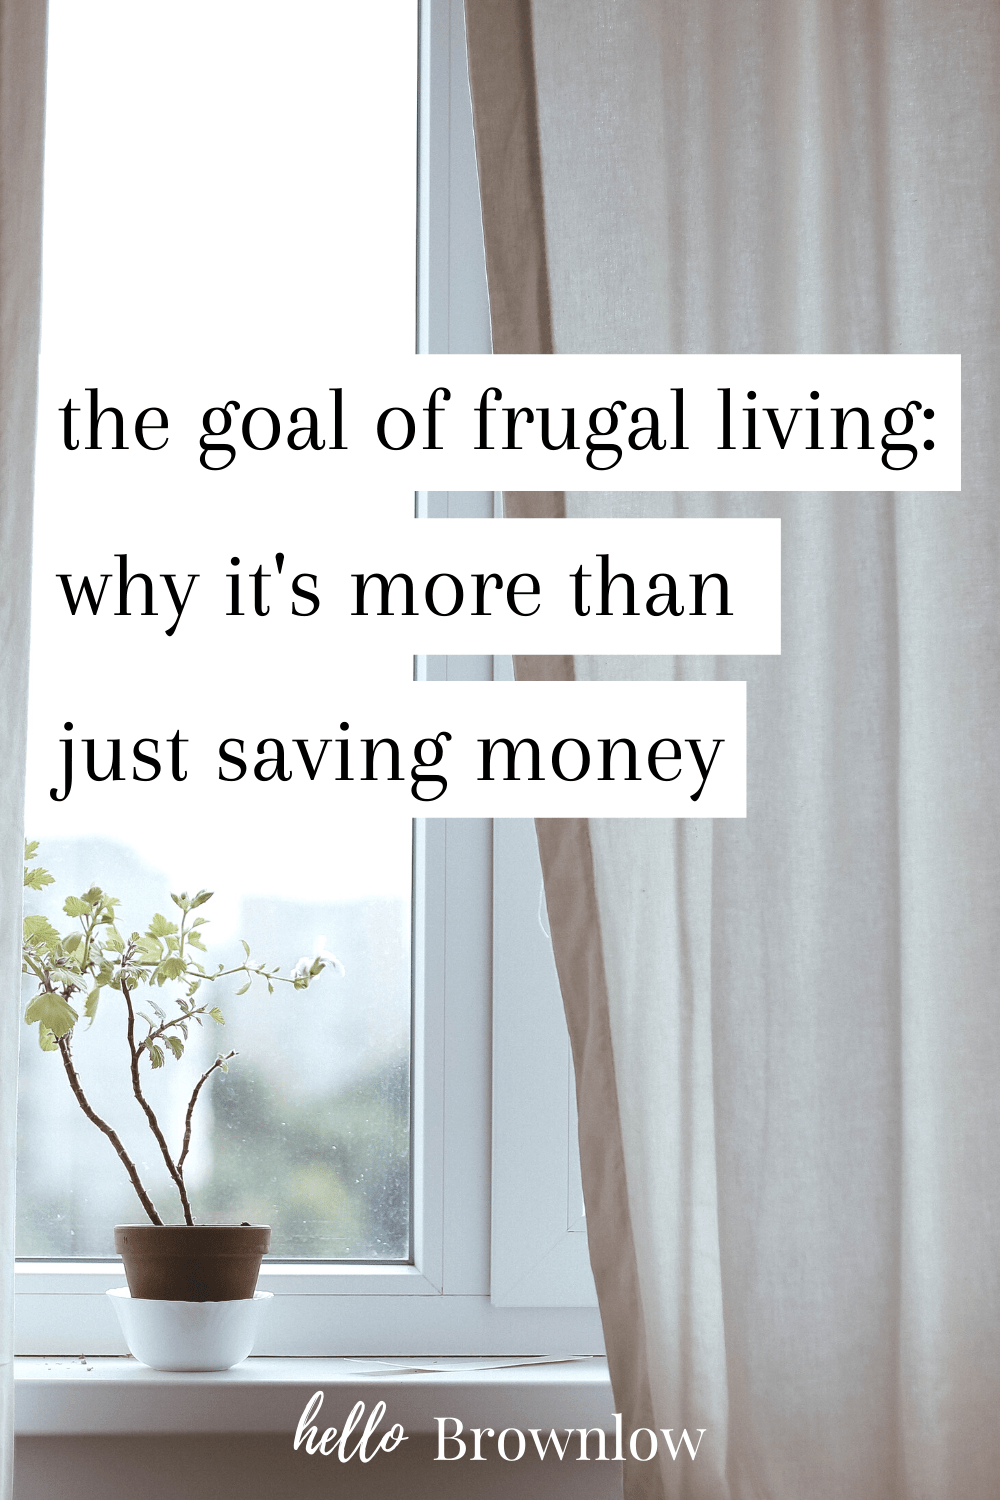 The goal of frugal living